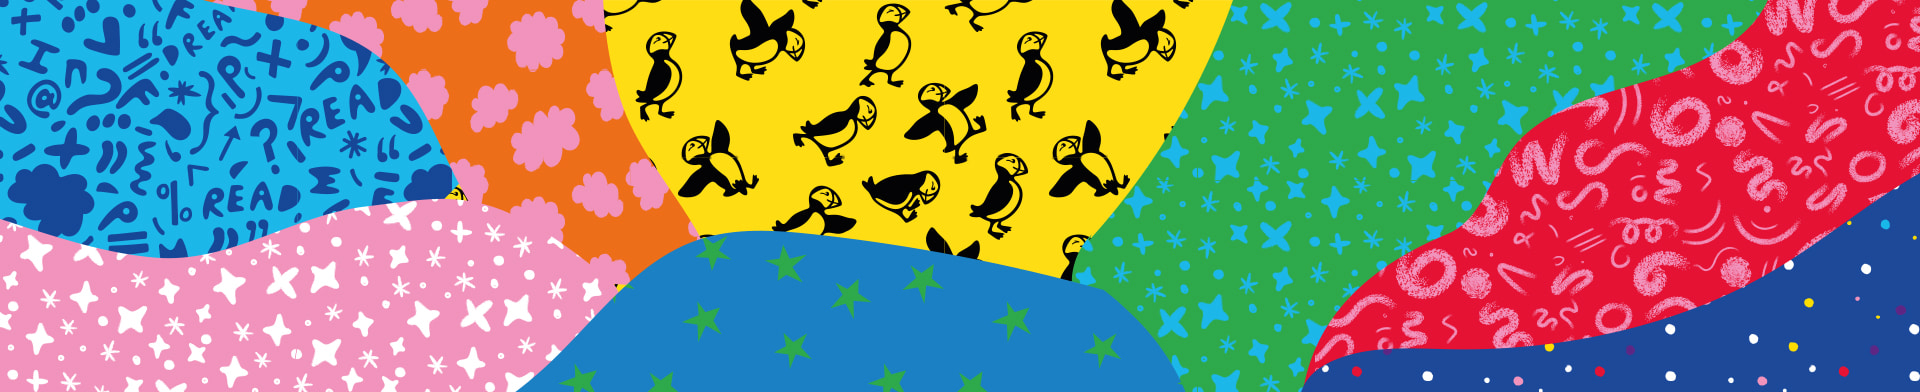 Take part in the Big Dreamers Writing Competition and win up to £200 of National Book Tokens!